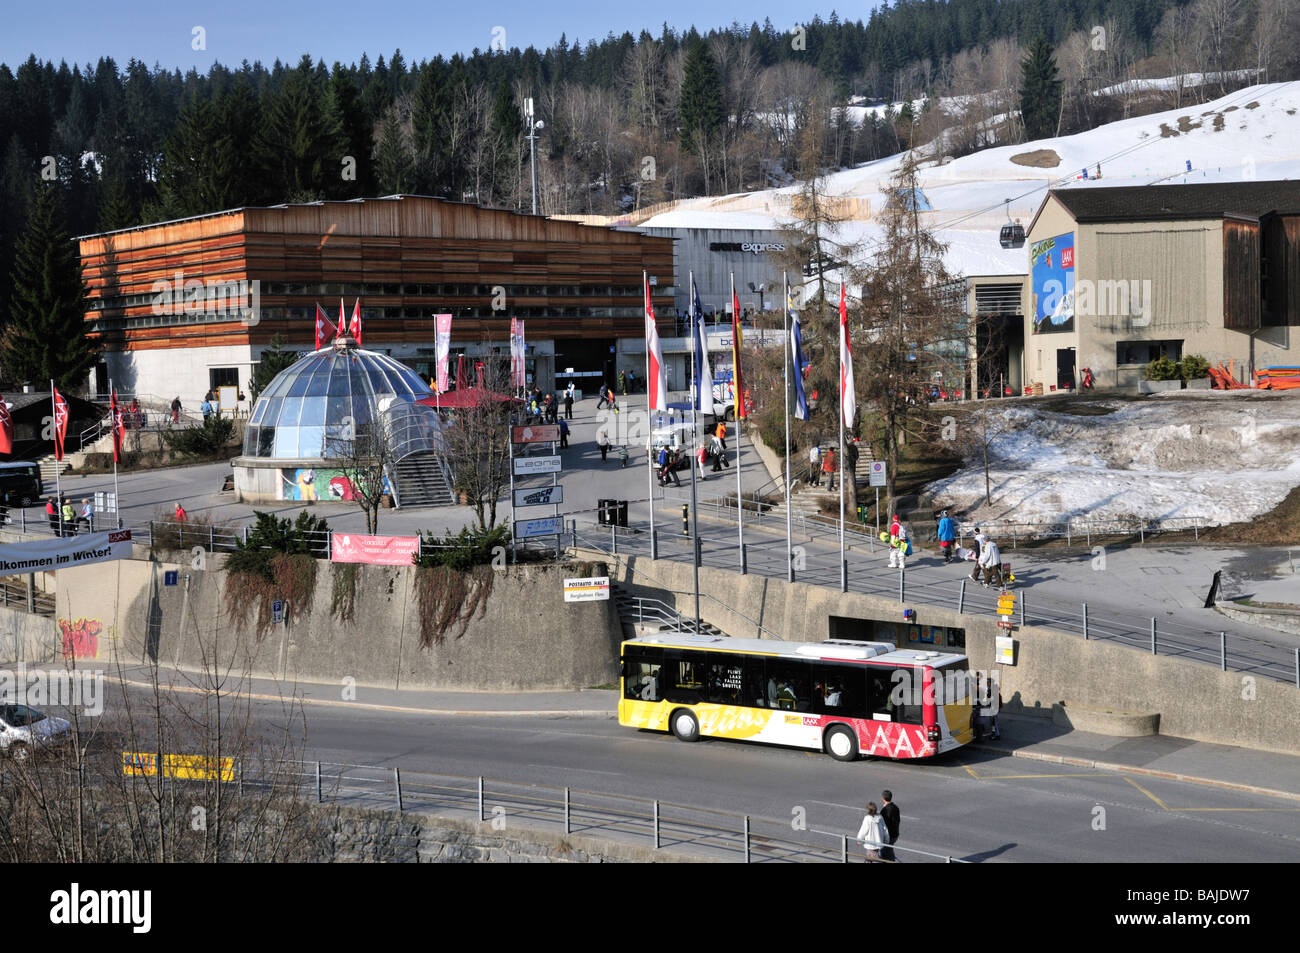 Lift station at Flims Dorf in the resort of Laax Flims Switzerland - Stock Image